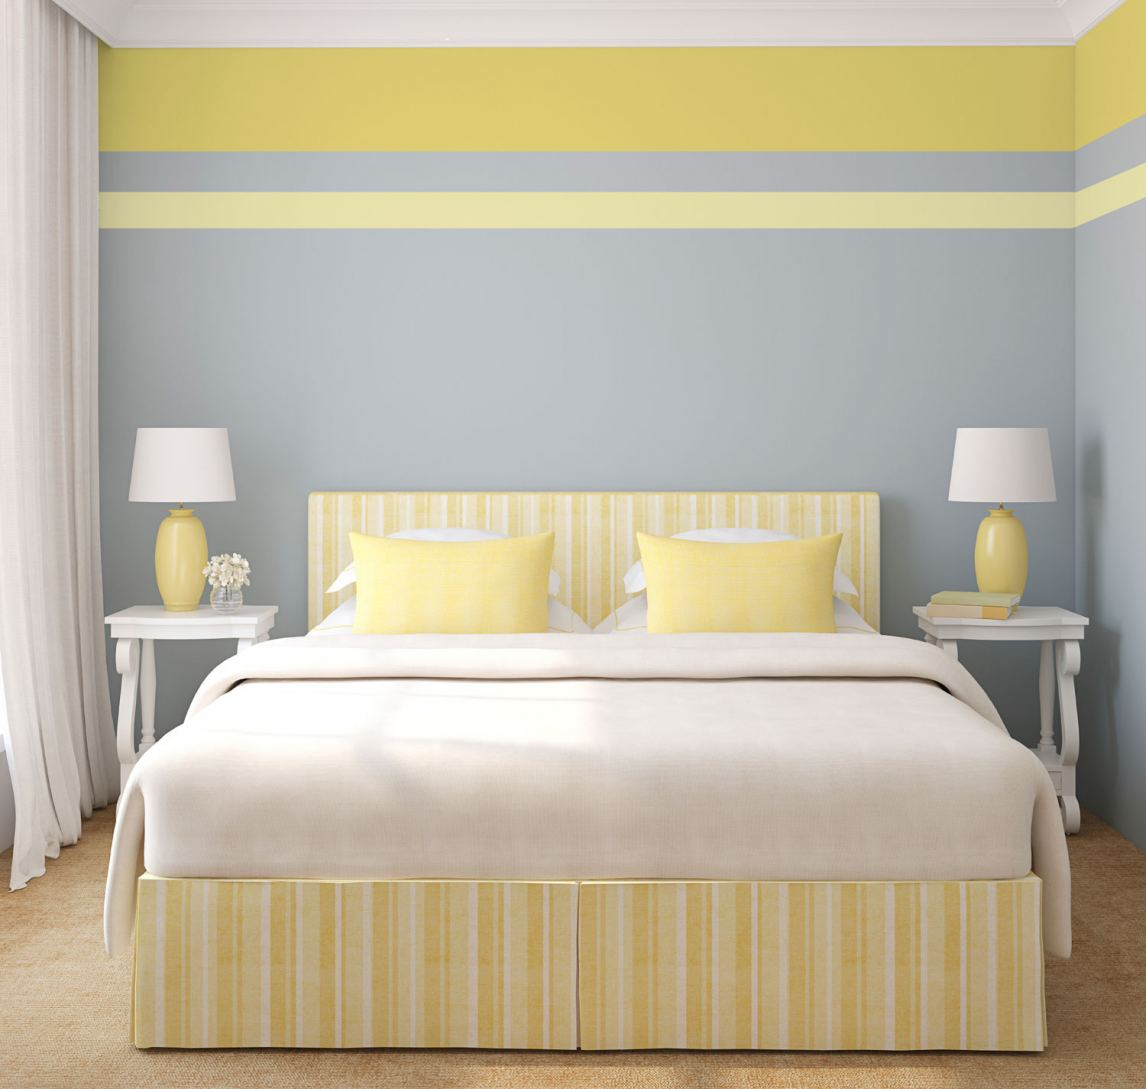 Stripe Wall Decals - talentneeds.com -